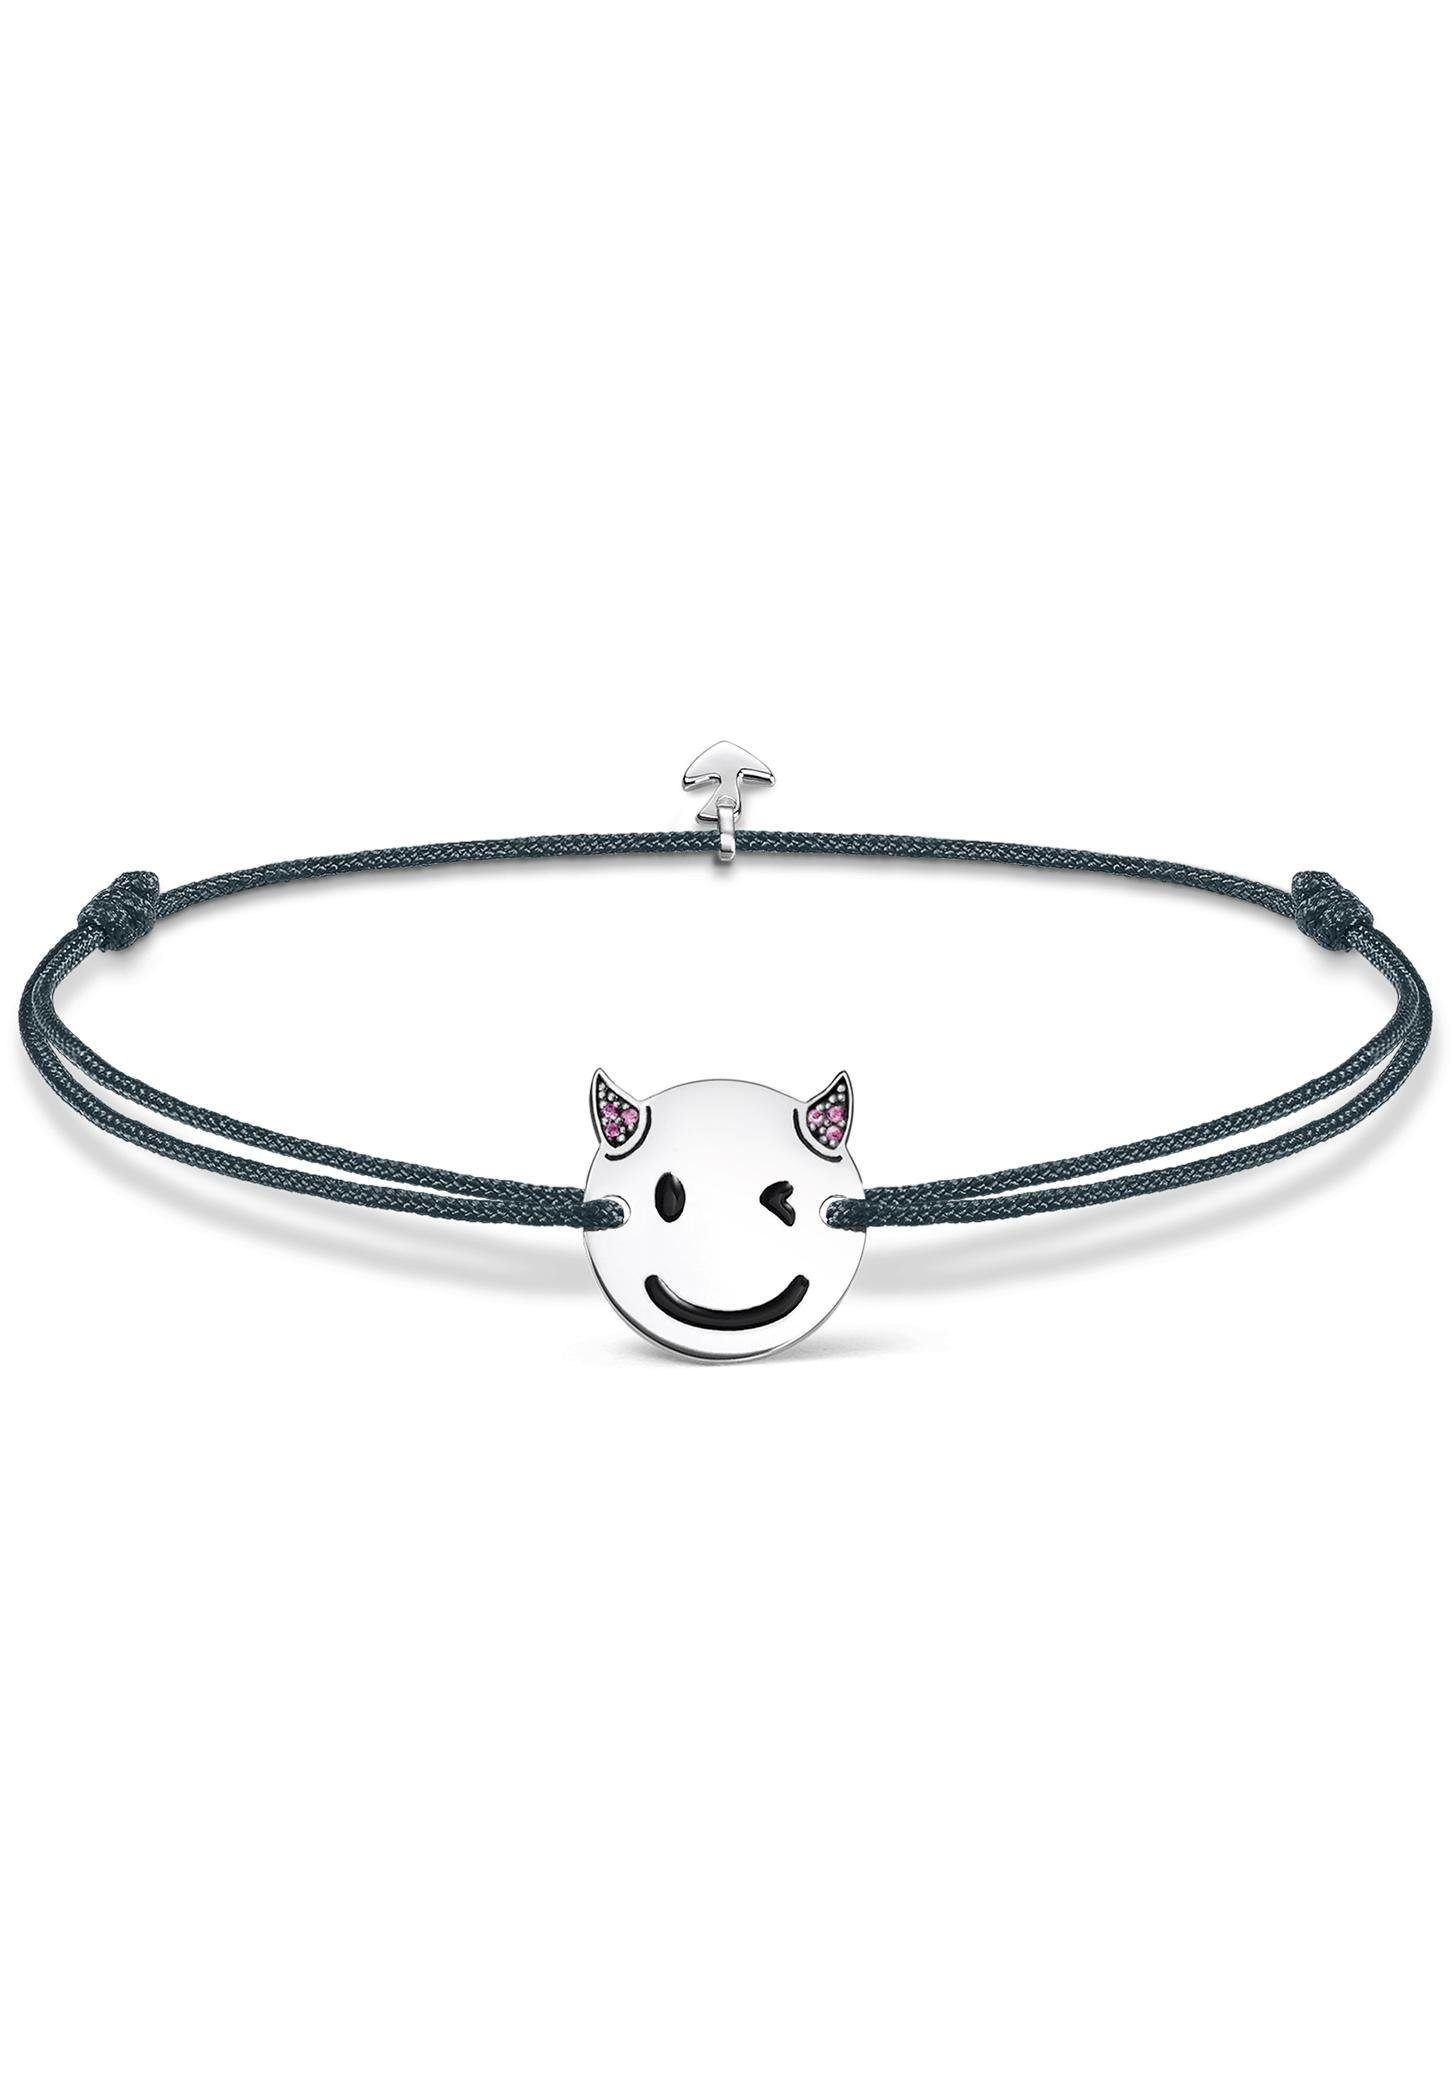 "THOMAS SABO Armband »Little Secret ""Teufel-Emoticon"", LS044-382-5-L20v« mit Emaille und synth. Korunden"